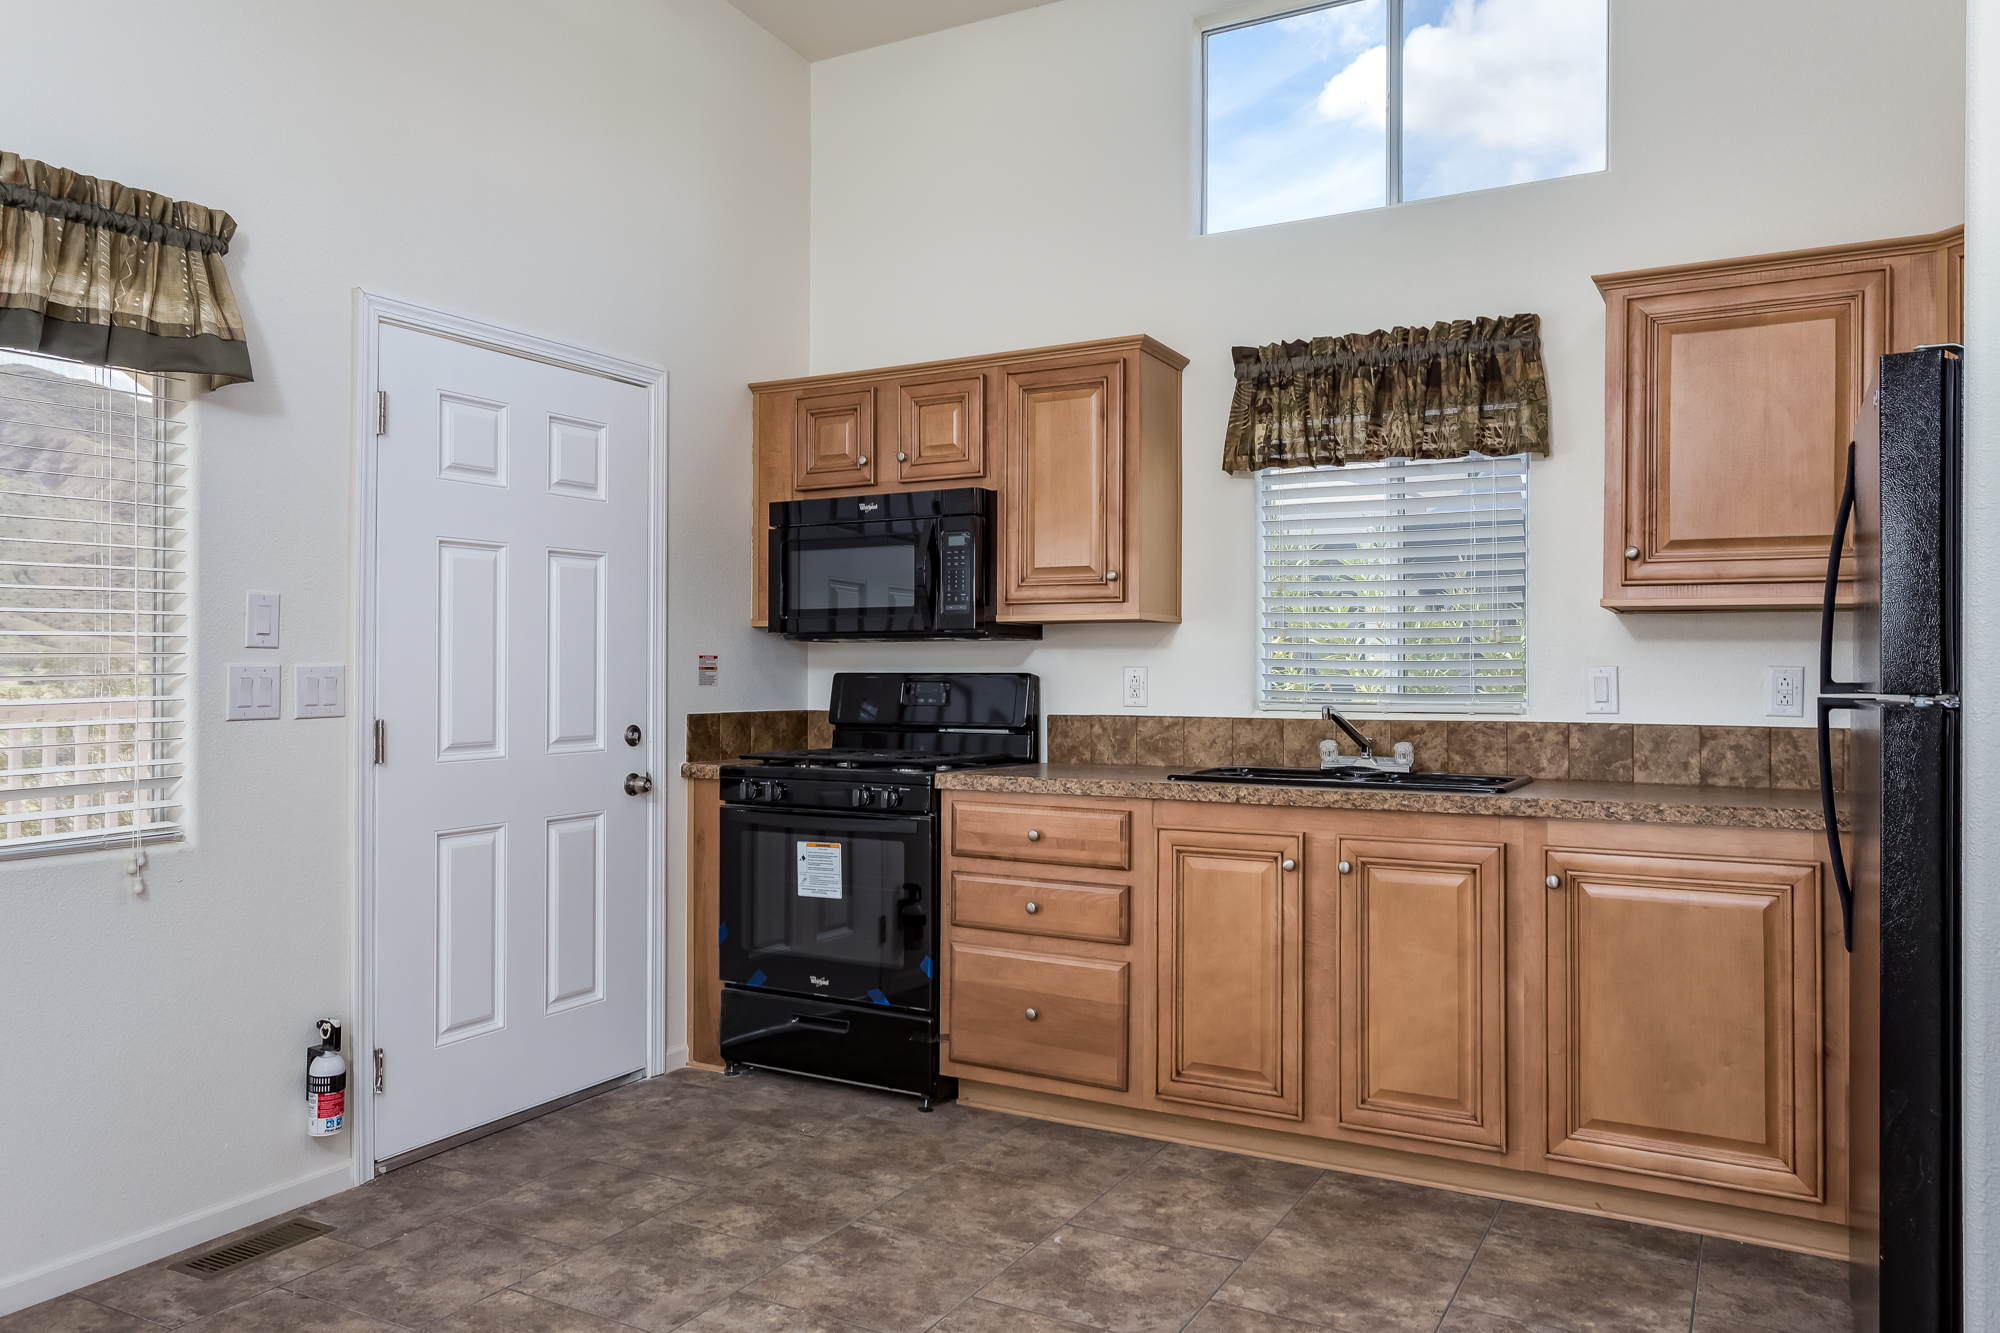 Palm Canyon Dr.,Borrego Springs,San Diego,California,United States 92004,1 Room Rooms,1 BathroomBathrooms,Home,Palm Canyon Dr.,1002